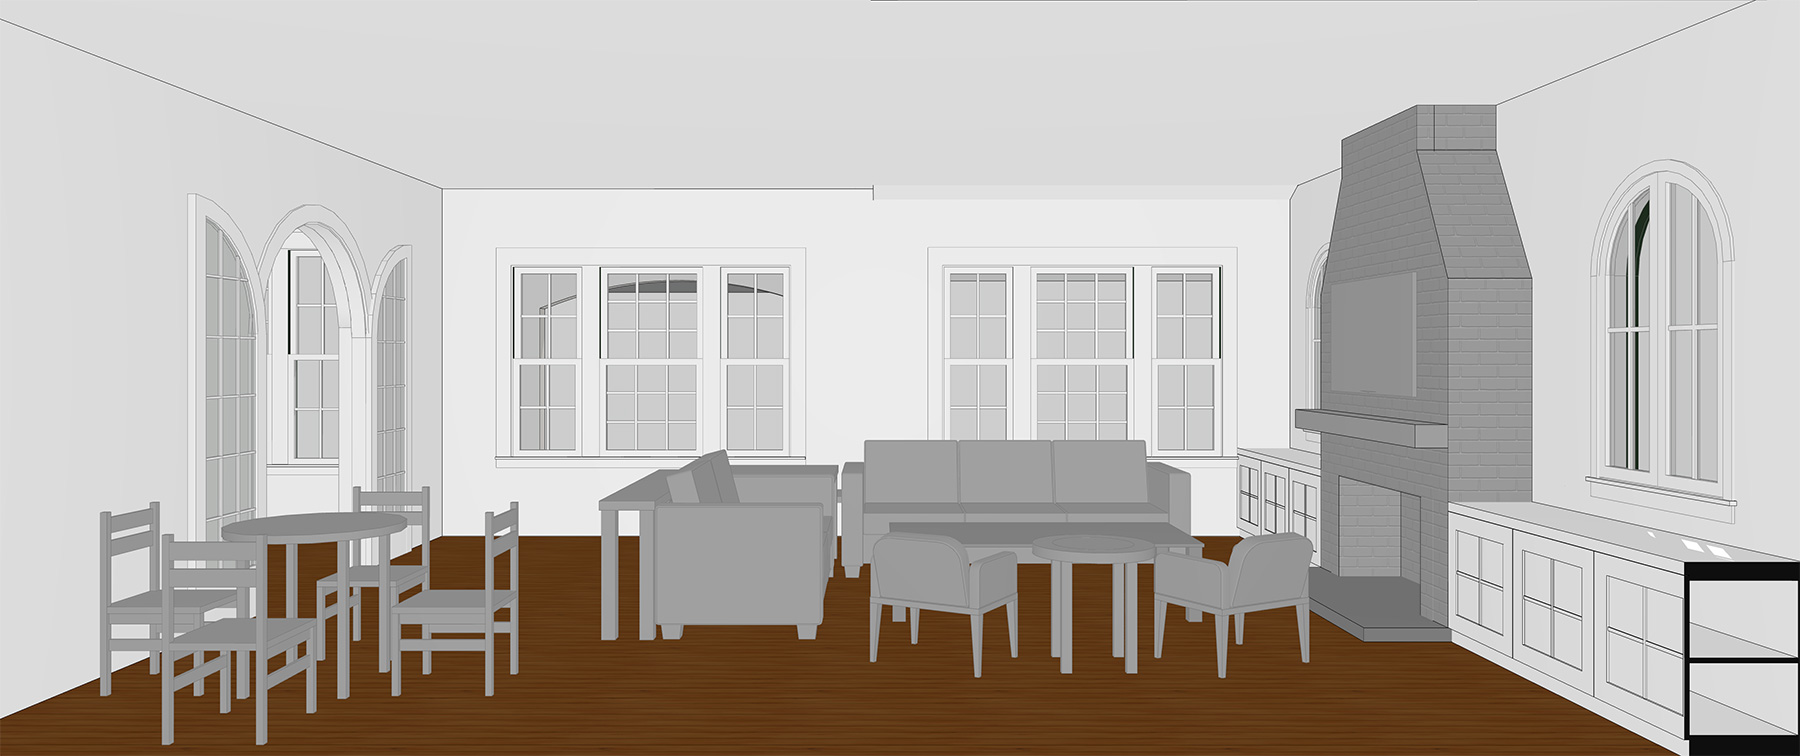 PROPOSED EXPANDED LIVING ROOM